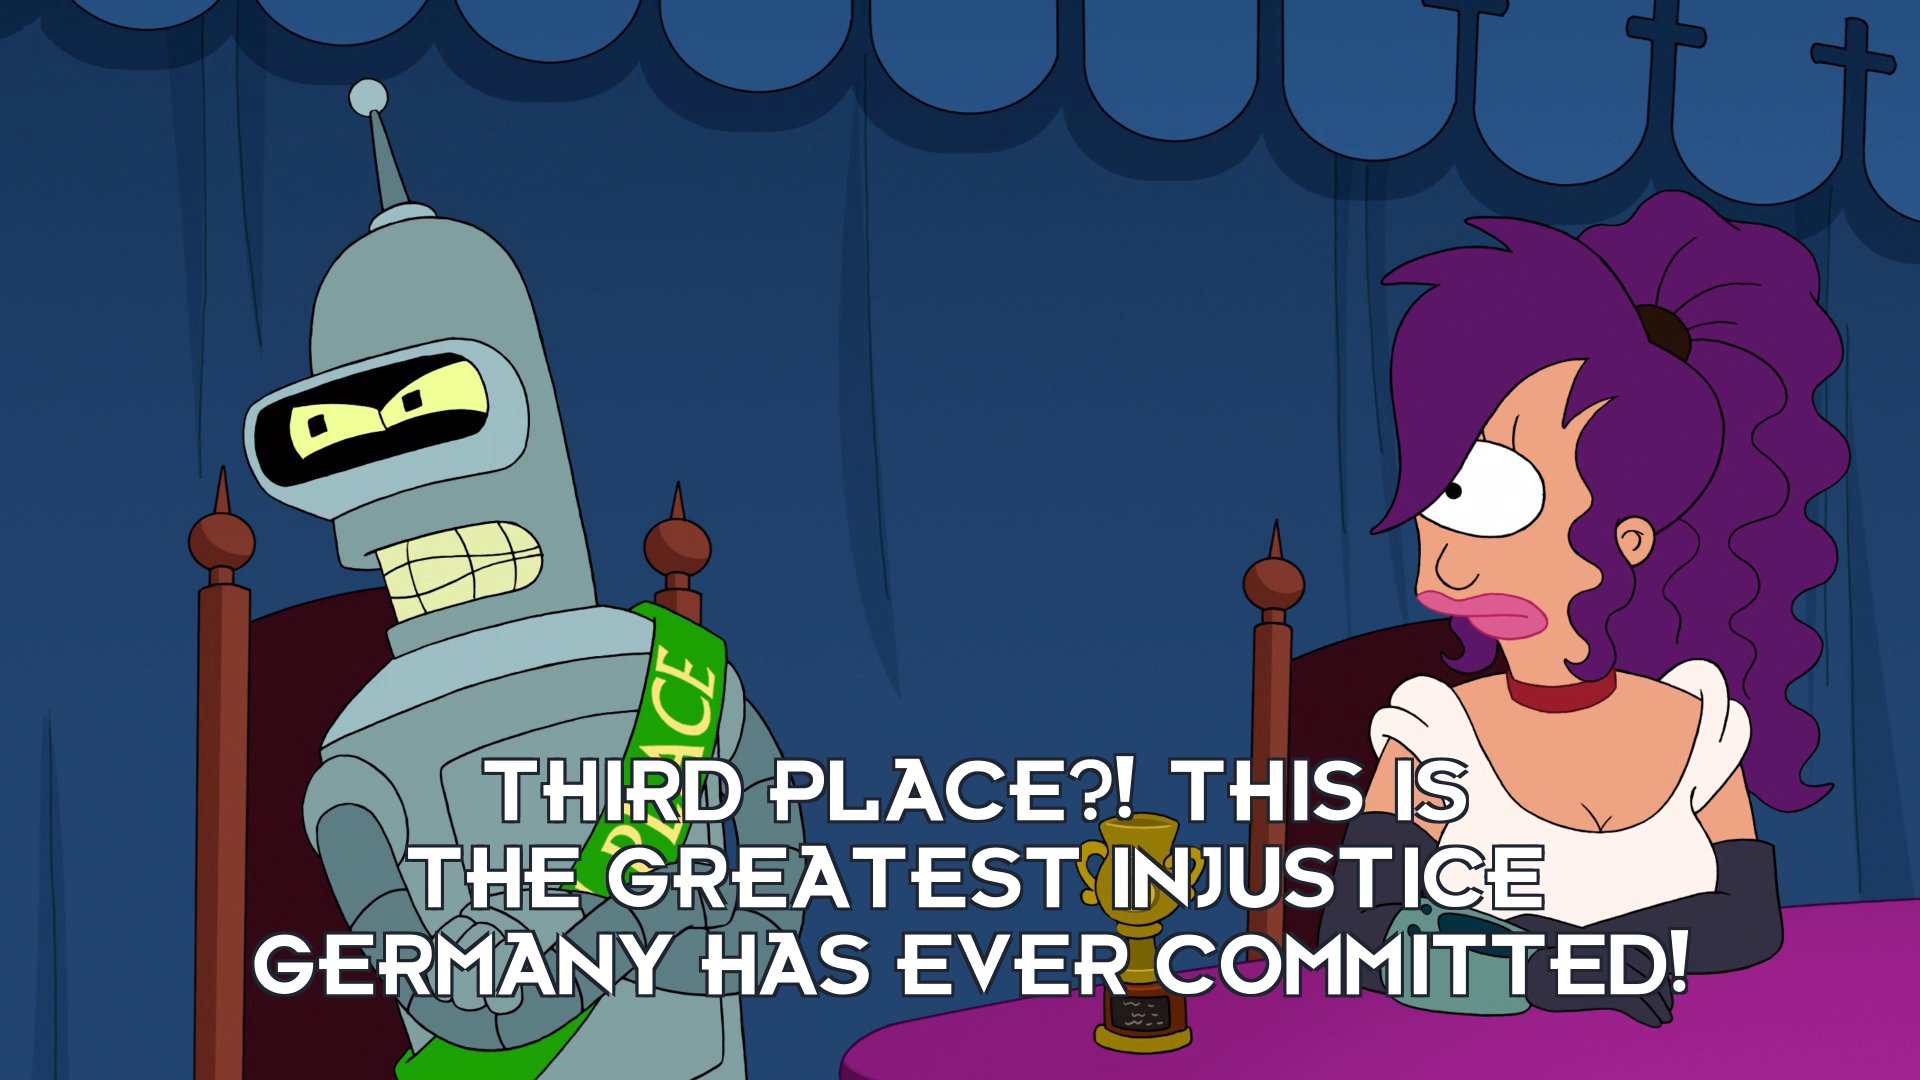 Bender Bending Rodriguez: Third place?! This is the greatest injustice Germany has ever committed!